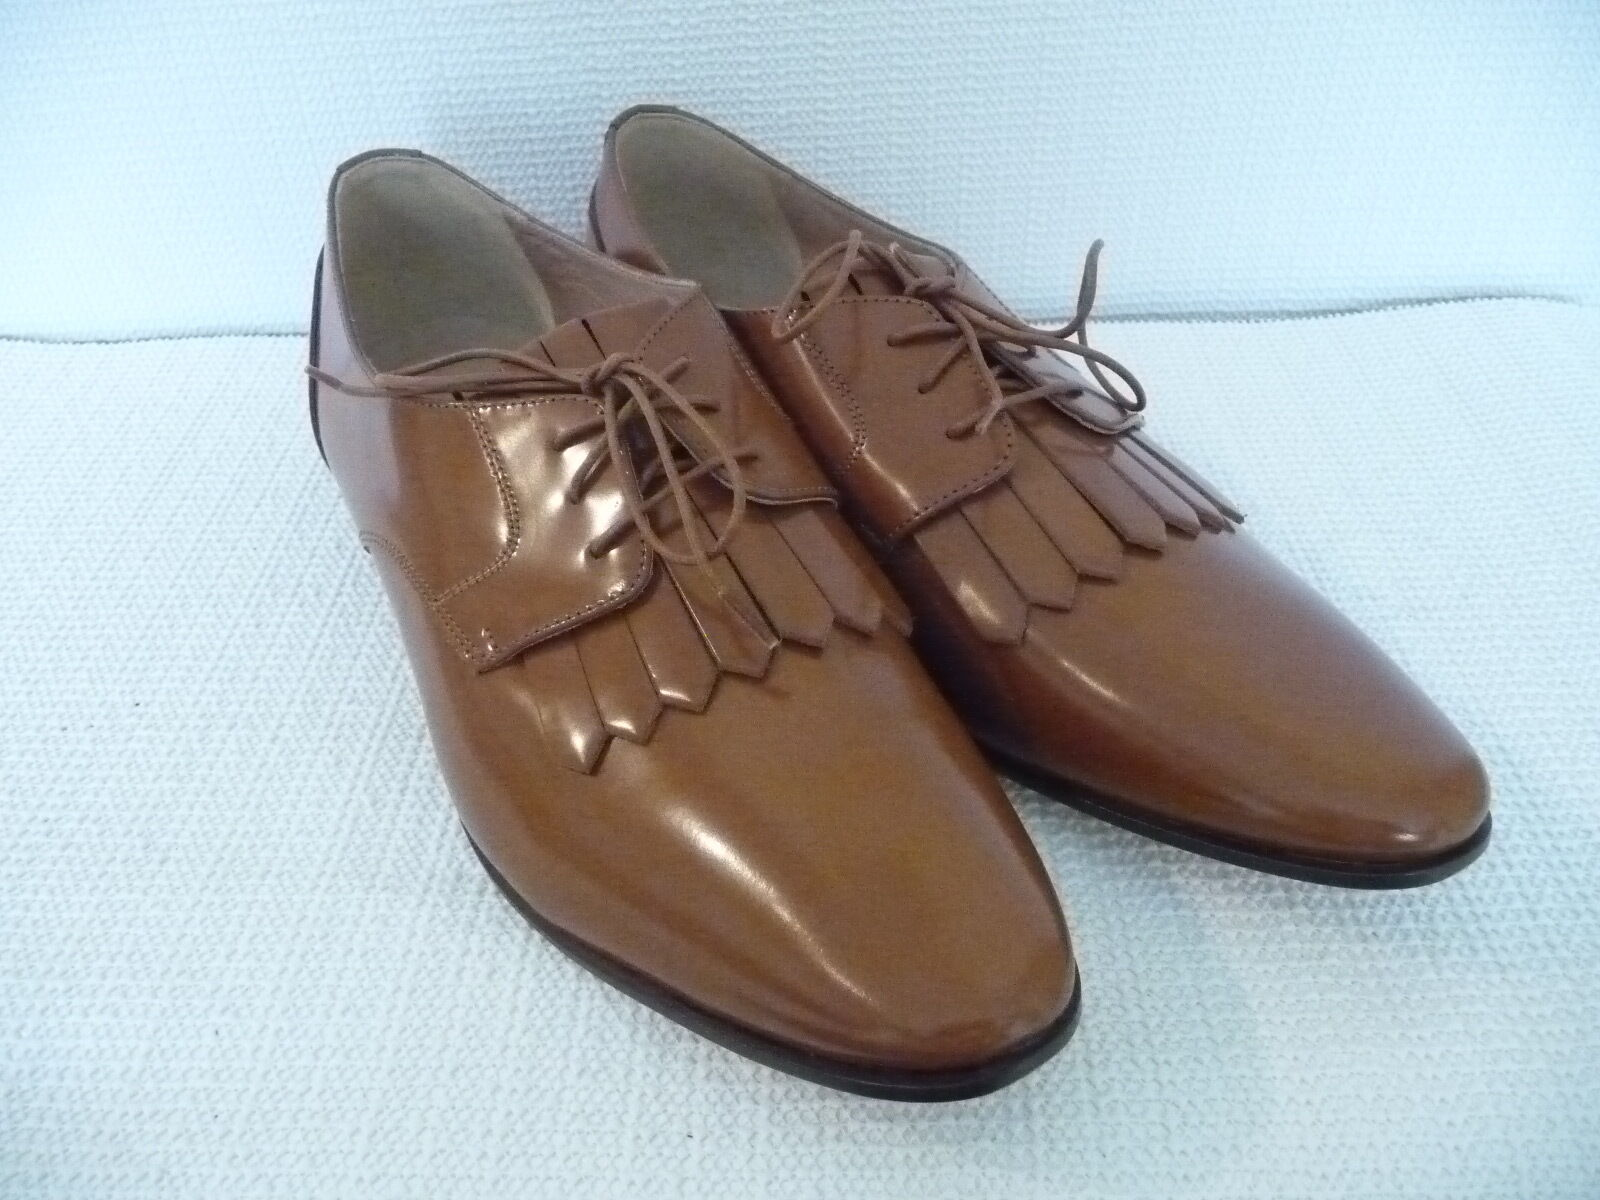 NEW J.CREW LEATHER OXFORDS WITH WITH WITH FRINGE, F4979, SIZE 10.5, WARM SEPIA,  228 40eb0a